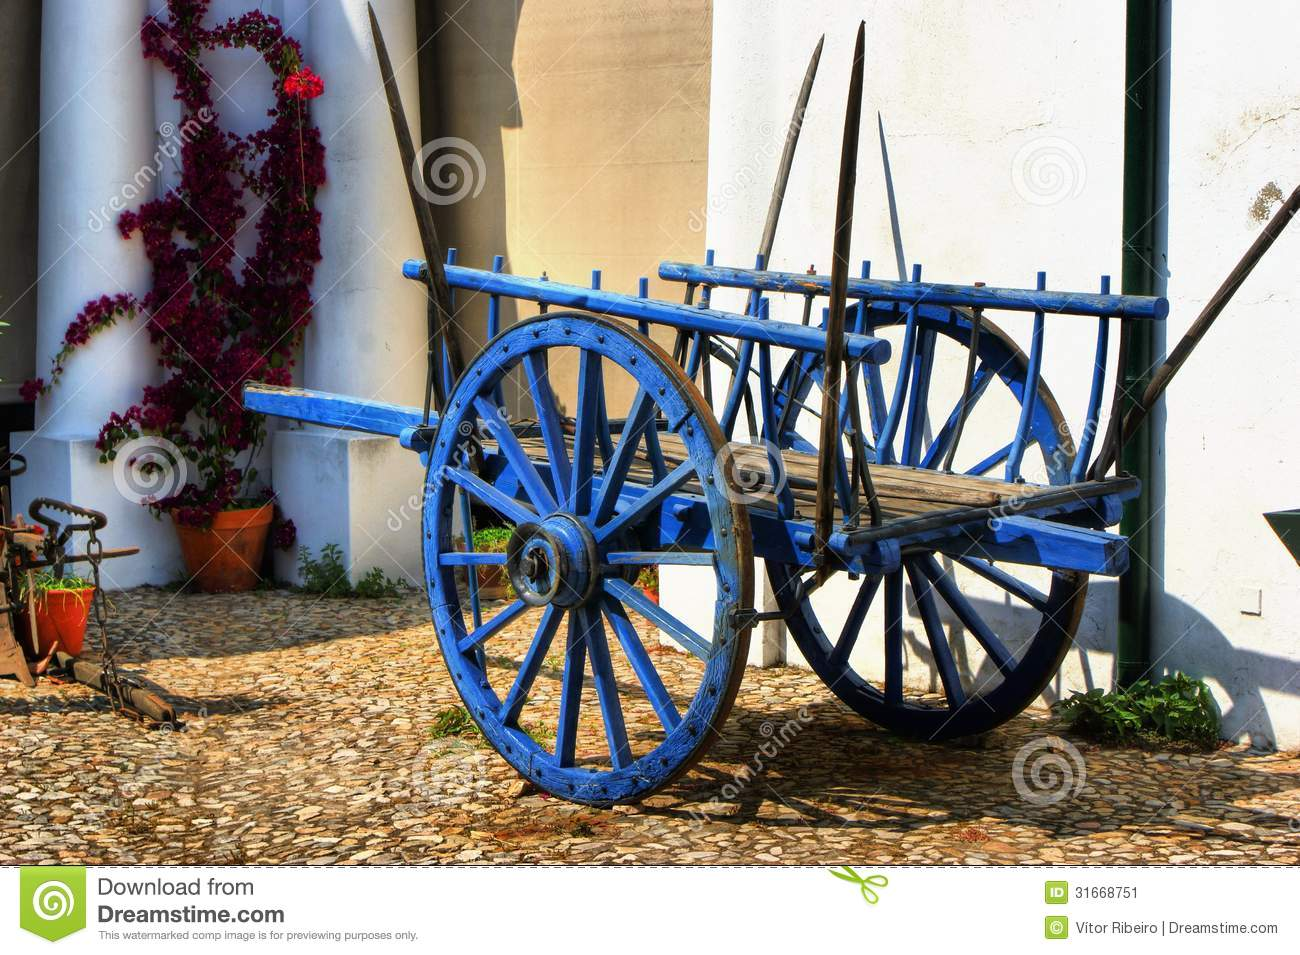 Vintage wooden cart in Alentejo